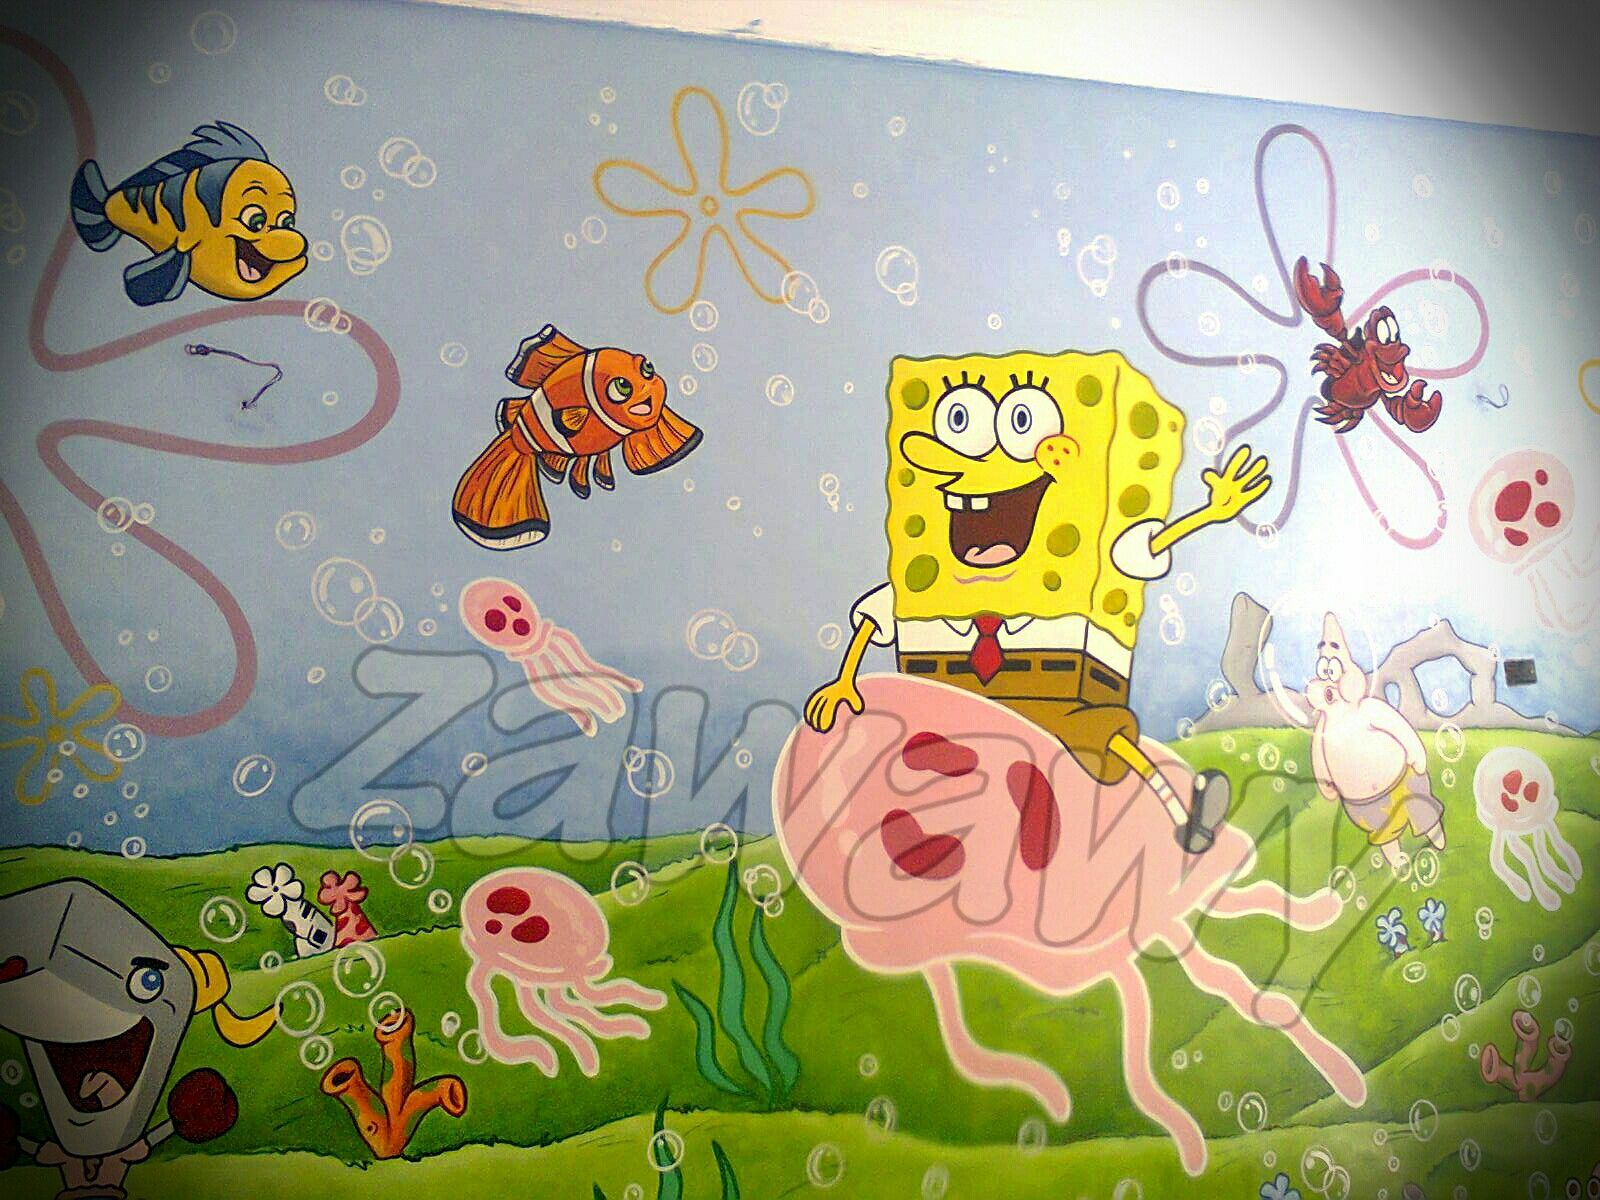 Pin By Mostafa Zawawy On Children S Room With Images Art Childrens Room Childrens